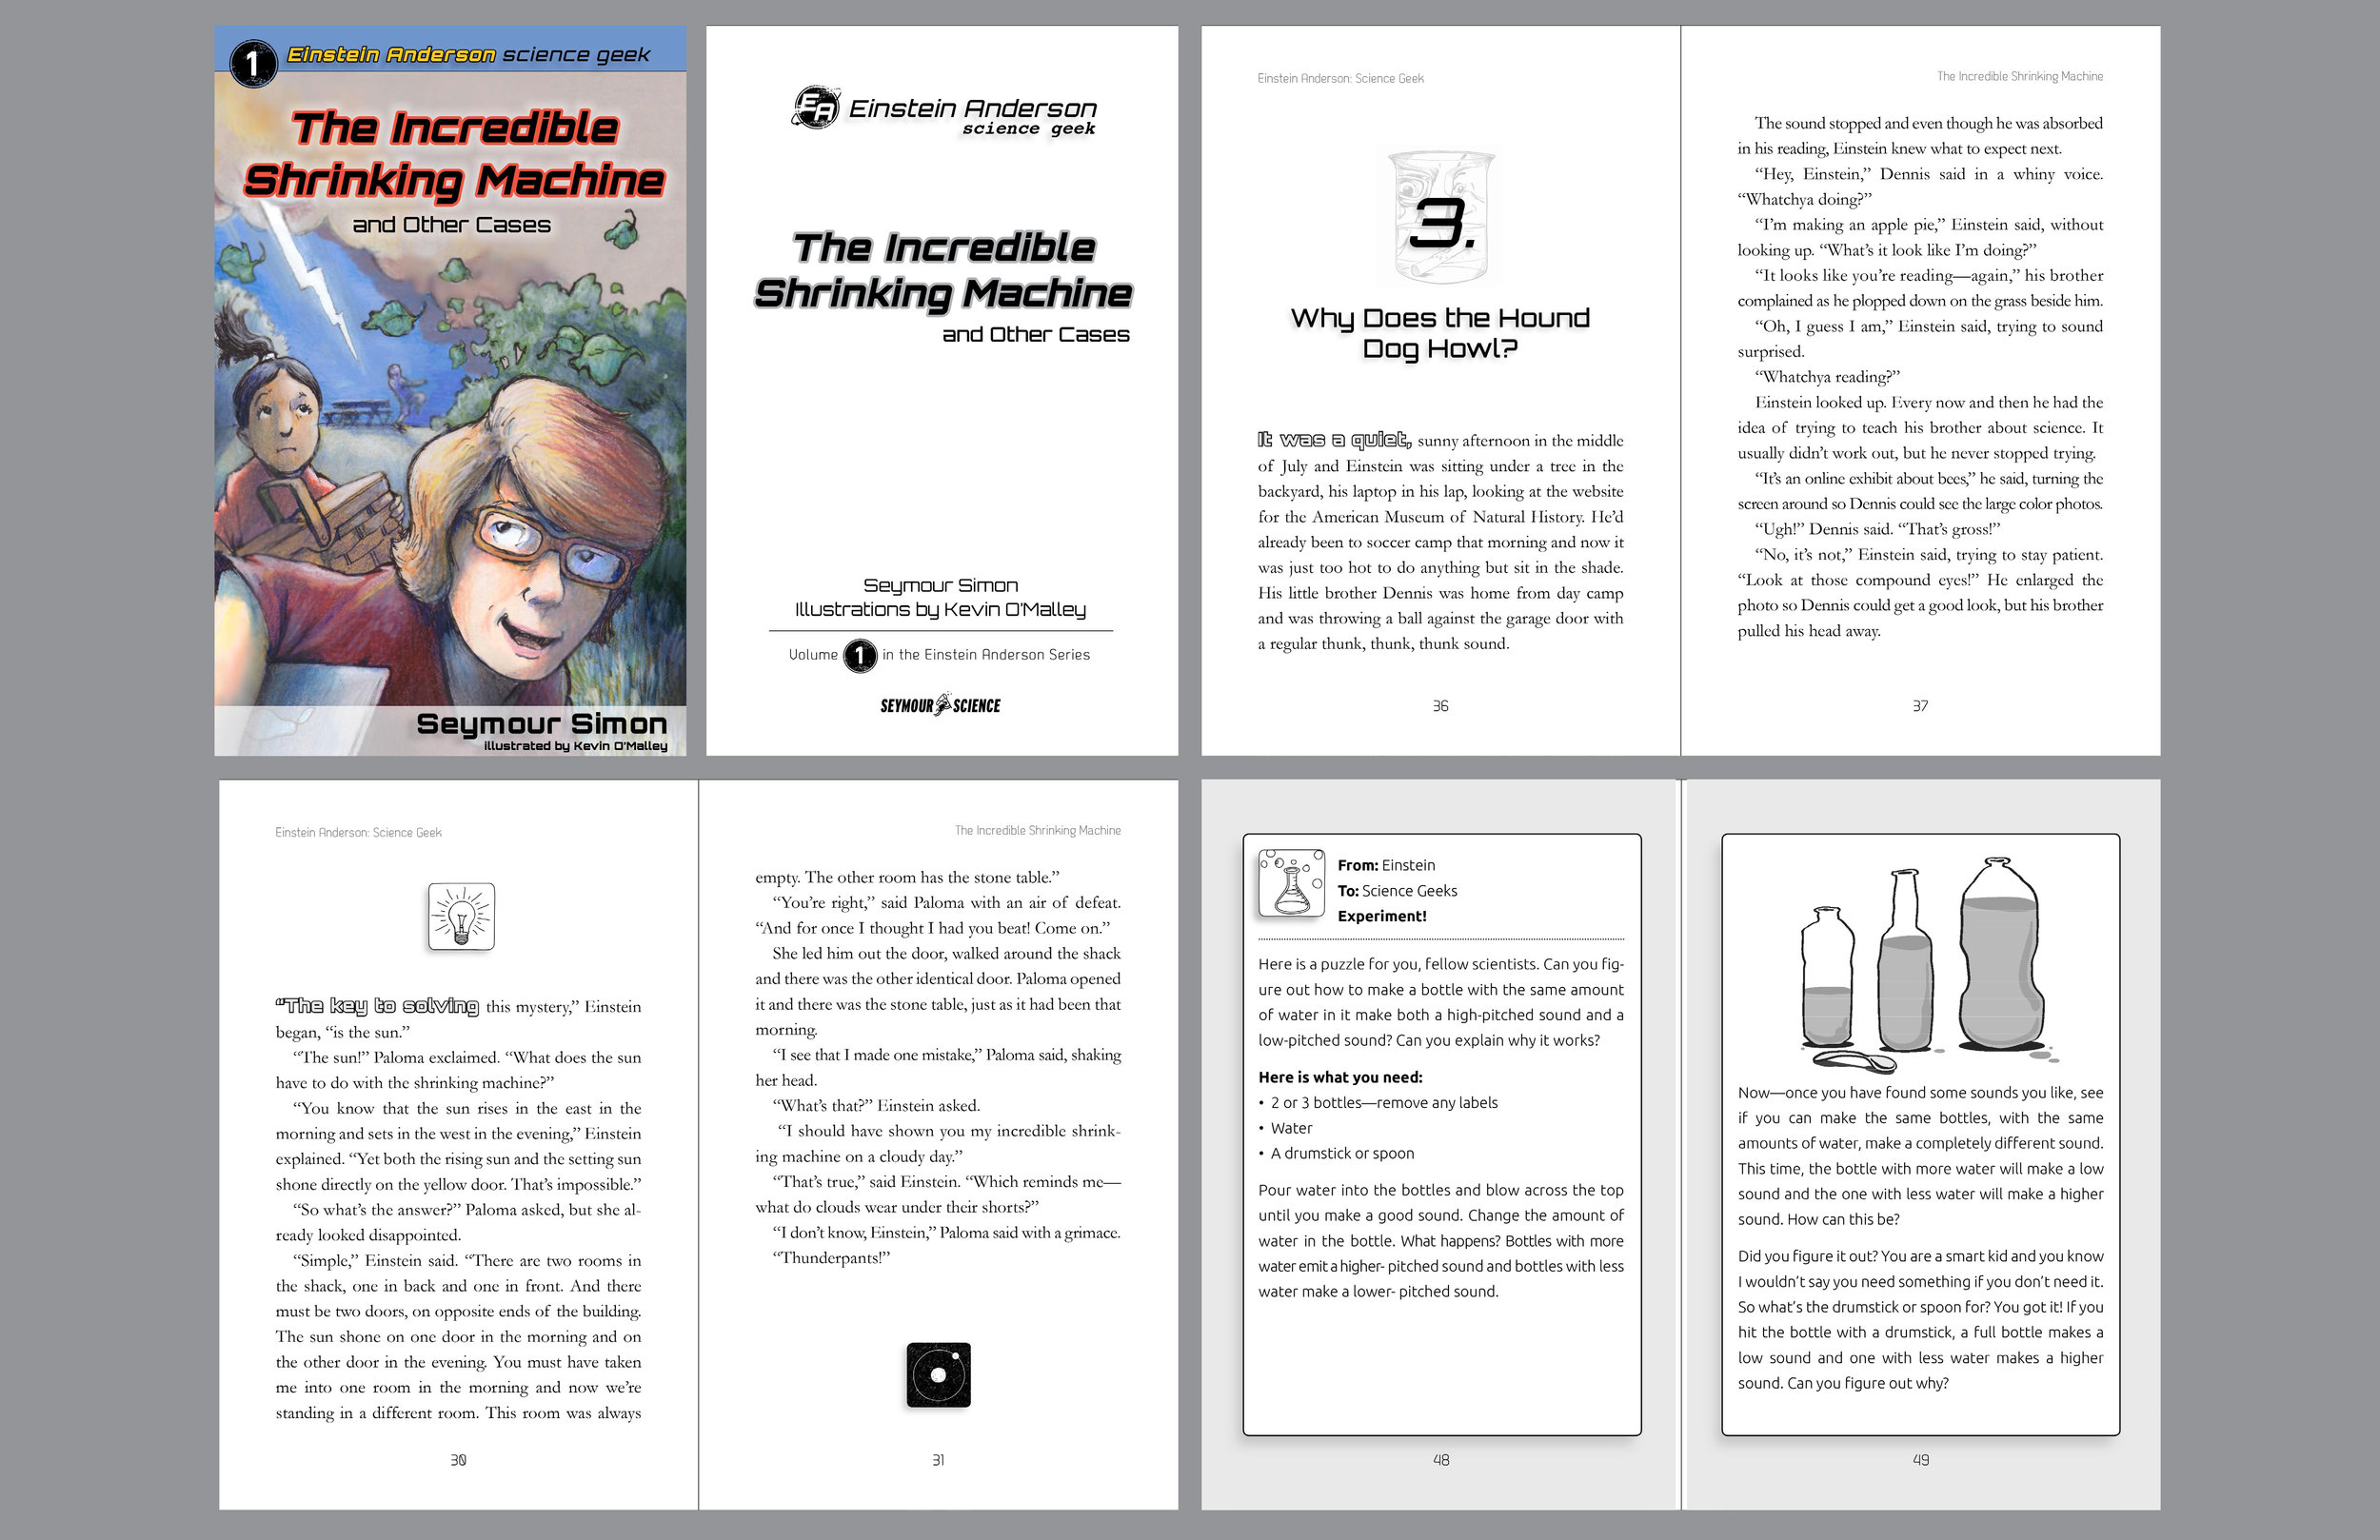 This book was designed for Starwalk Kids. It serves as a template for more books in the series that will be produced in digital and print formats. I was responsible for the logo and branding elements in addition to the rest of the book layout and typography.